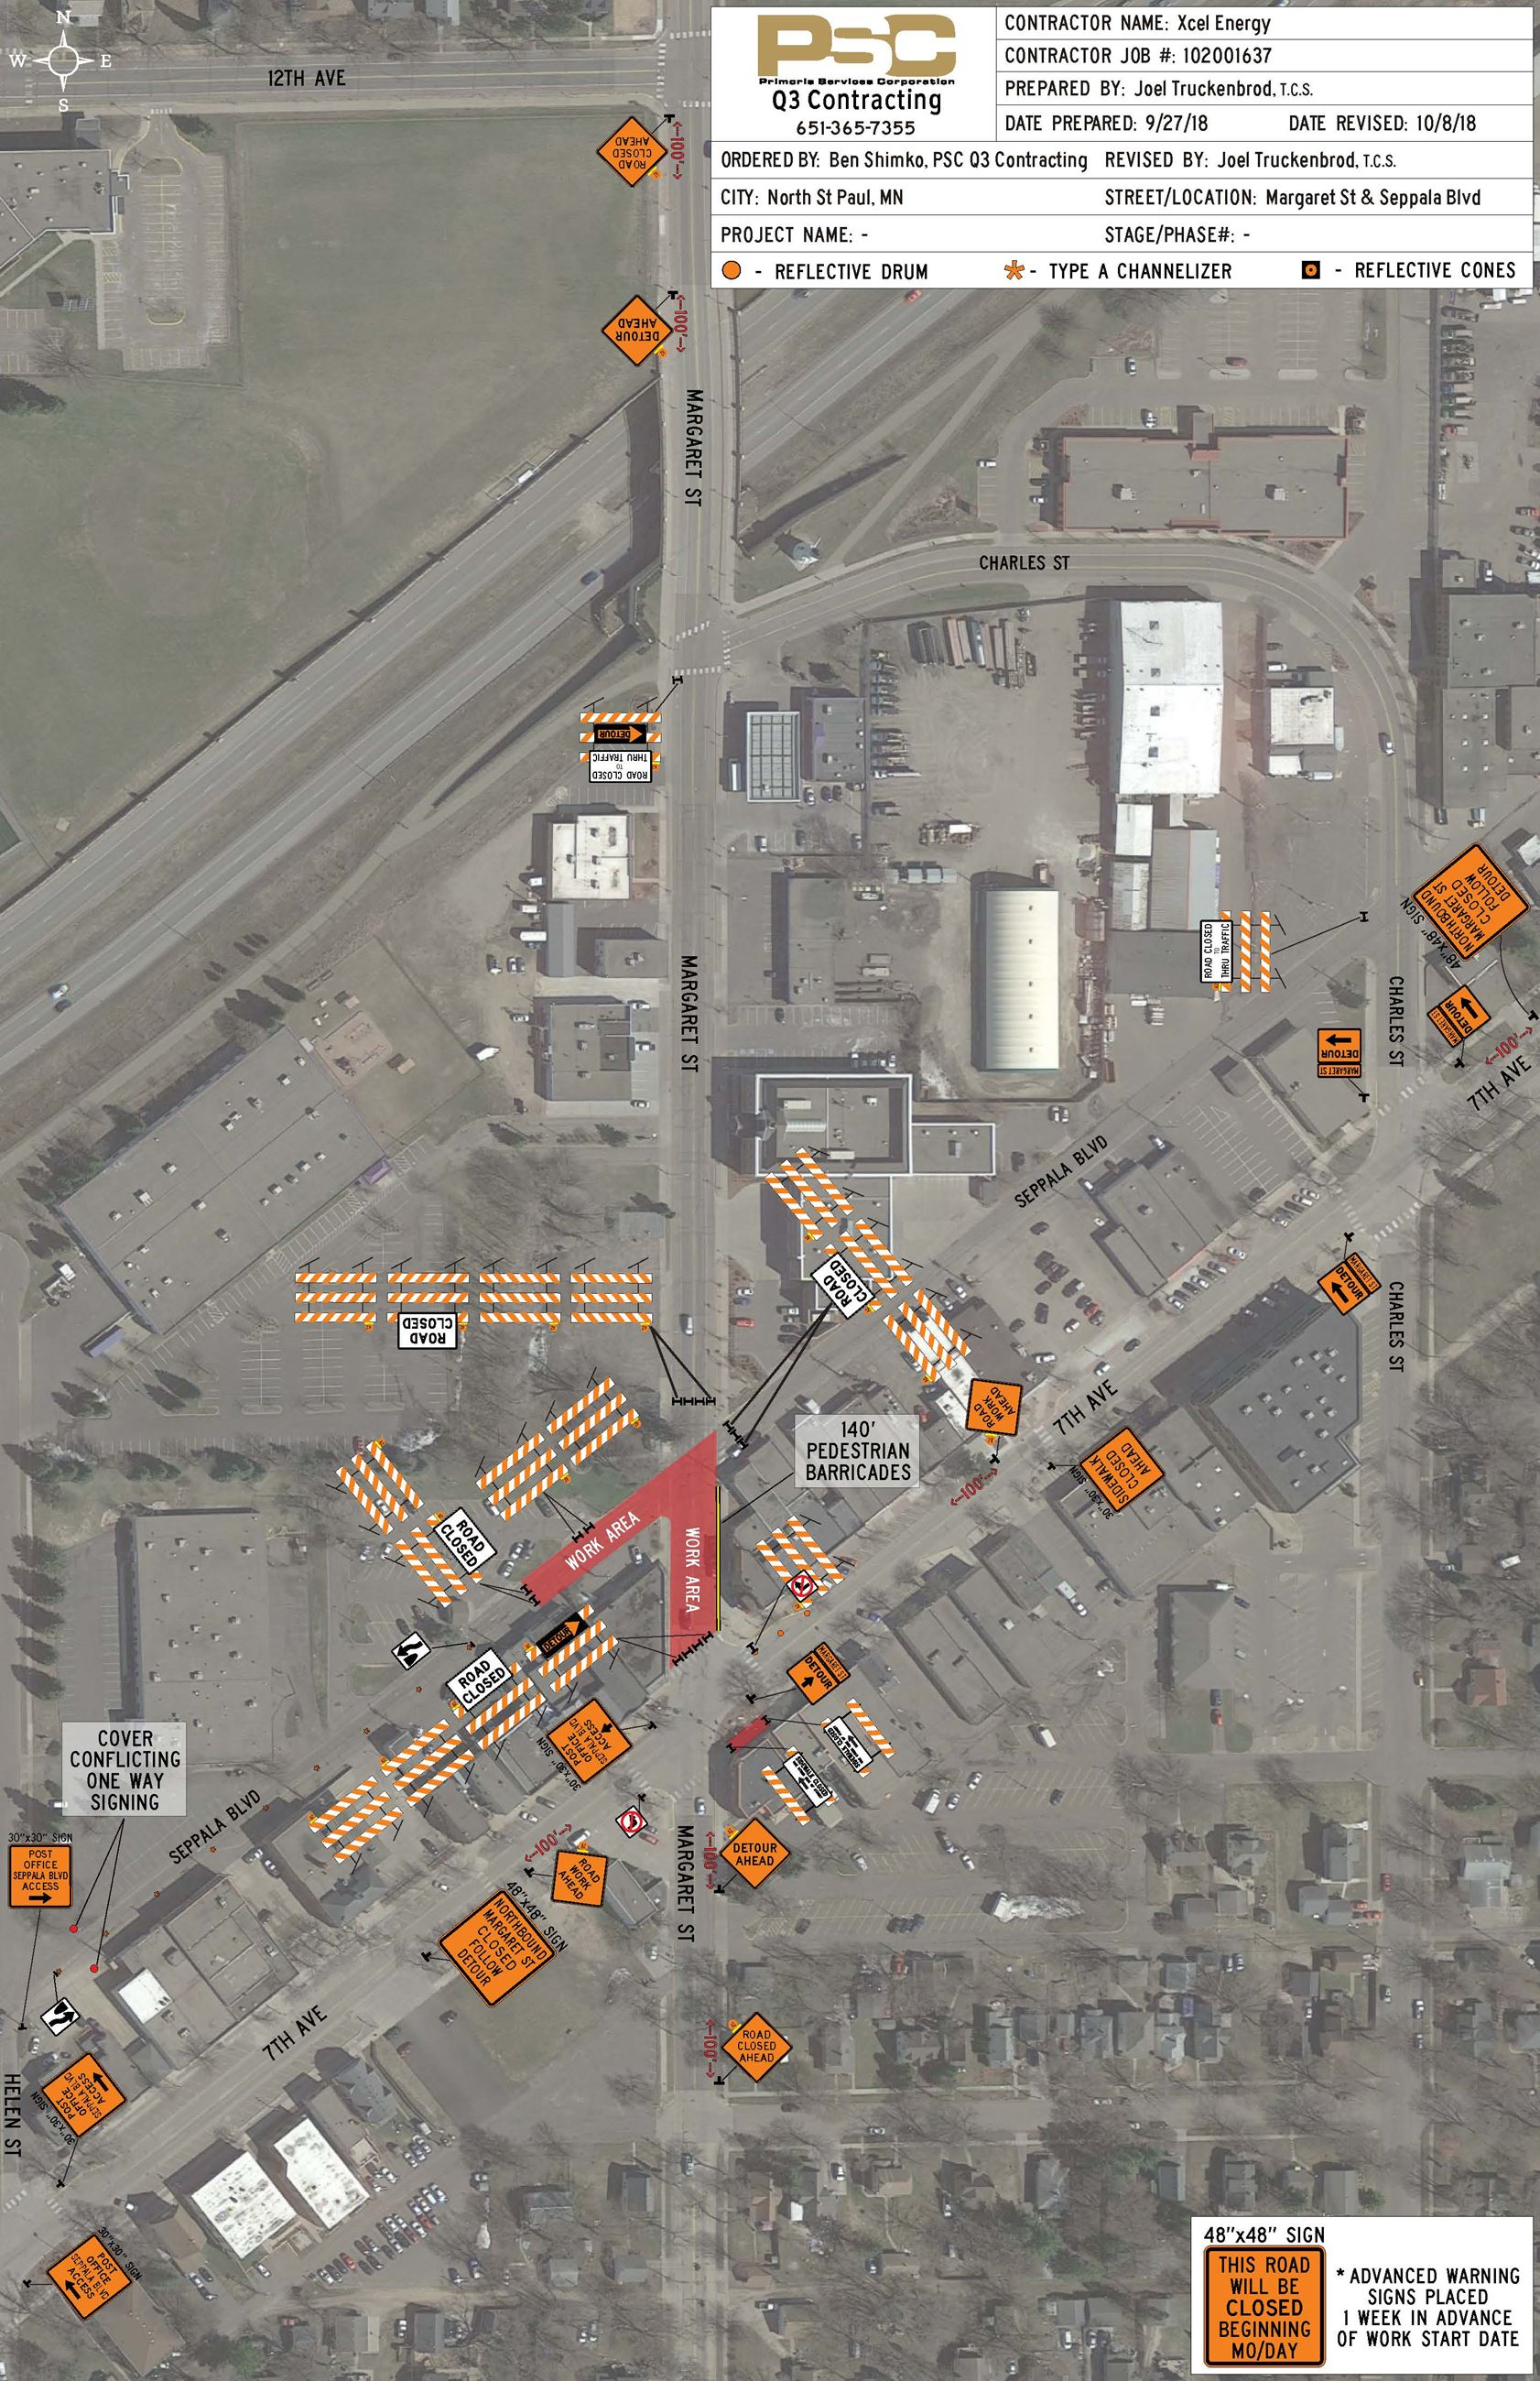 Xcel Energy - Margaret St Seppala Blvd Project Map